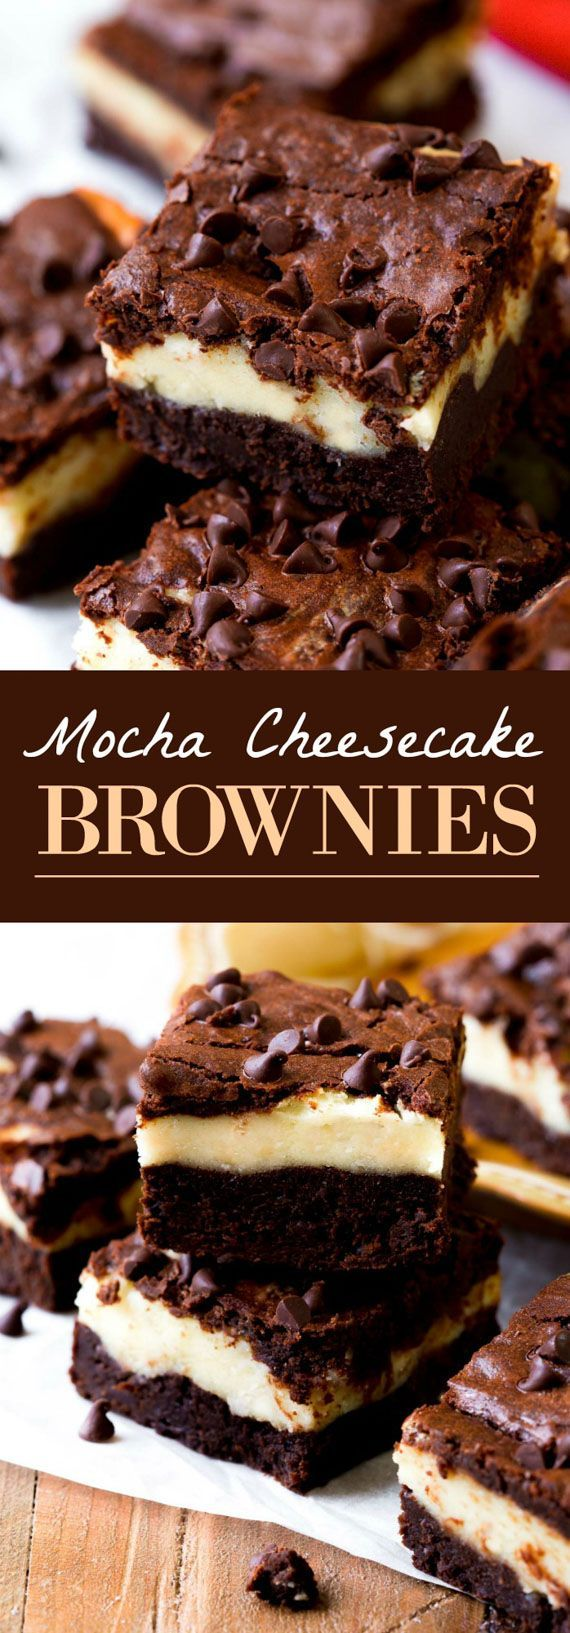 Mocha cheesecake brownies with a homemade mocha brownie layer, cheesecake, white chocolate chips, and more chocolate on top! Recipe on http://sallysbakingaddiction.com